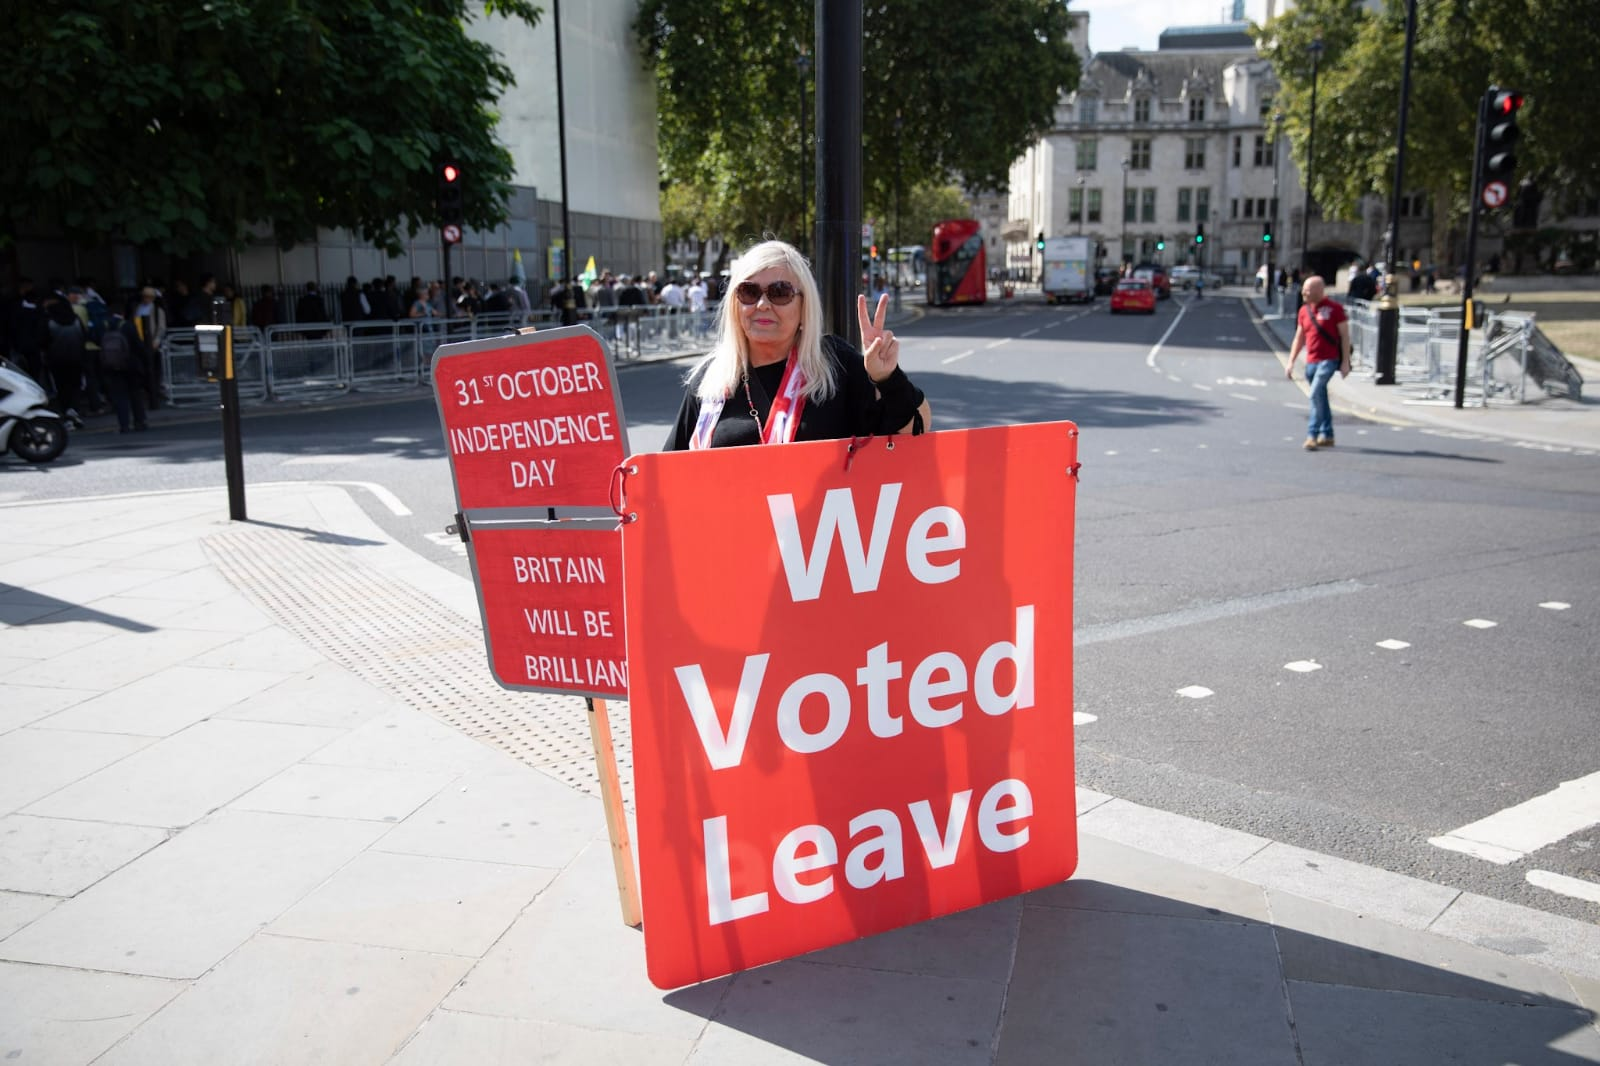 We voted Leave